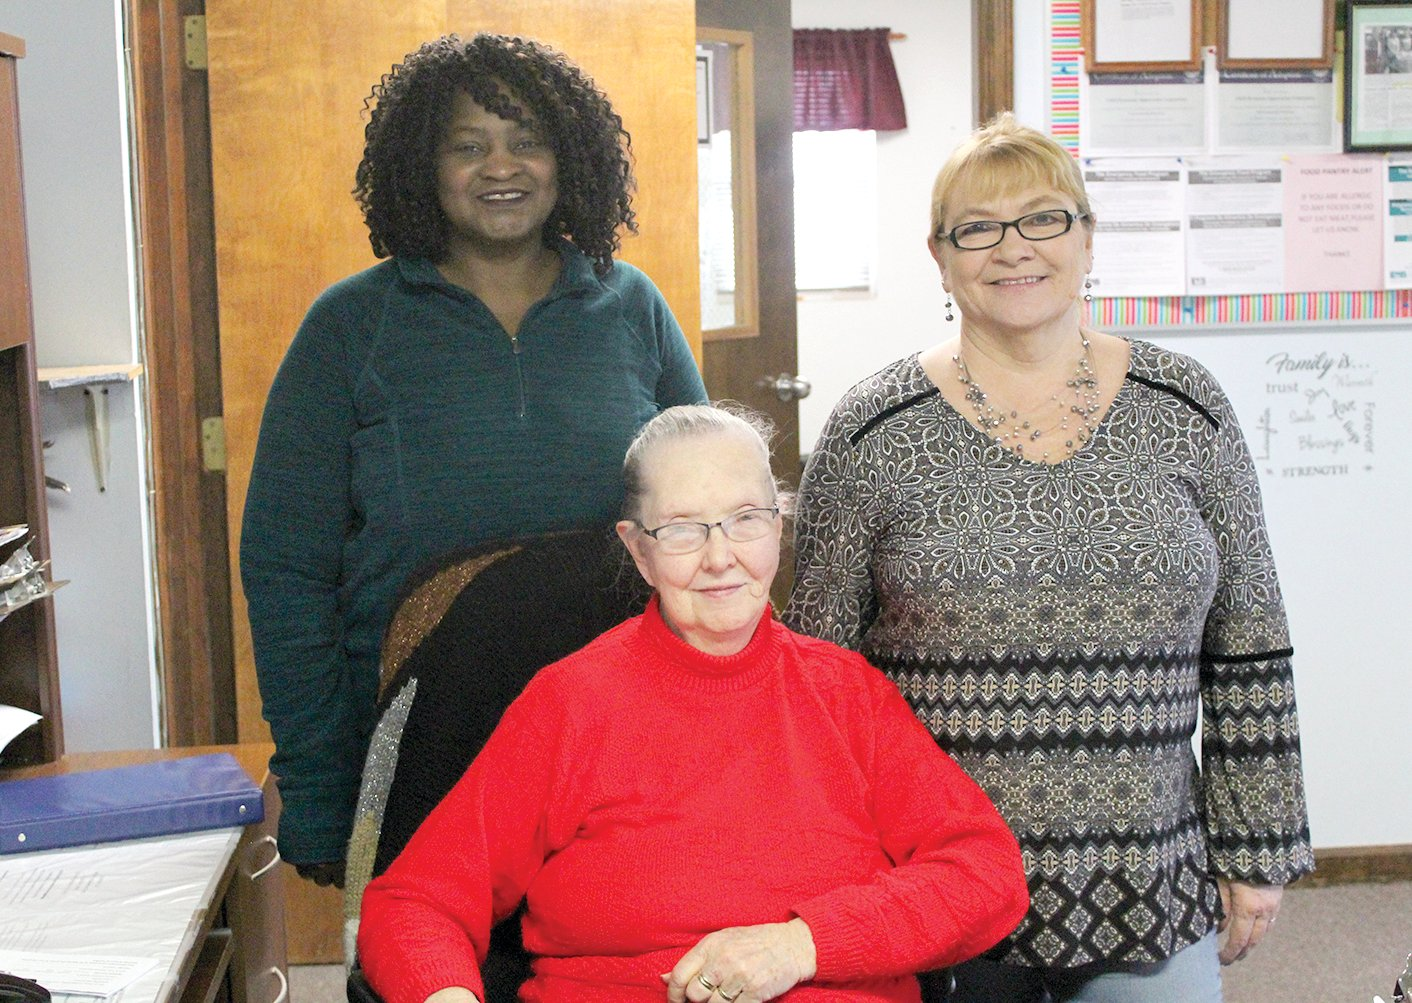 As a volunteer for CEFS, one of Mary Guinn's favorite things is interacting with clients and those she works with, including the ones pictured above. From the left are CEFS Outreach Coordinator Charity Griggs, Guinn and CEFS Outreach Housing Counselor Brenda Decker.